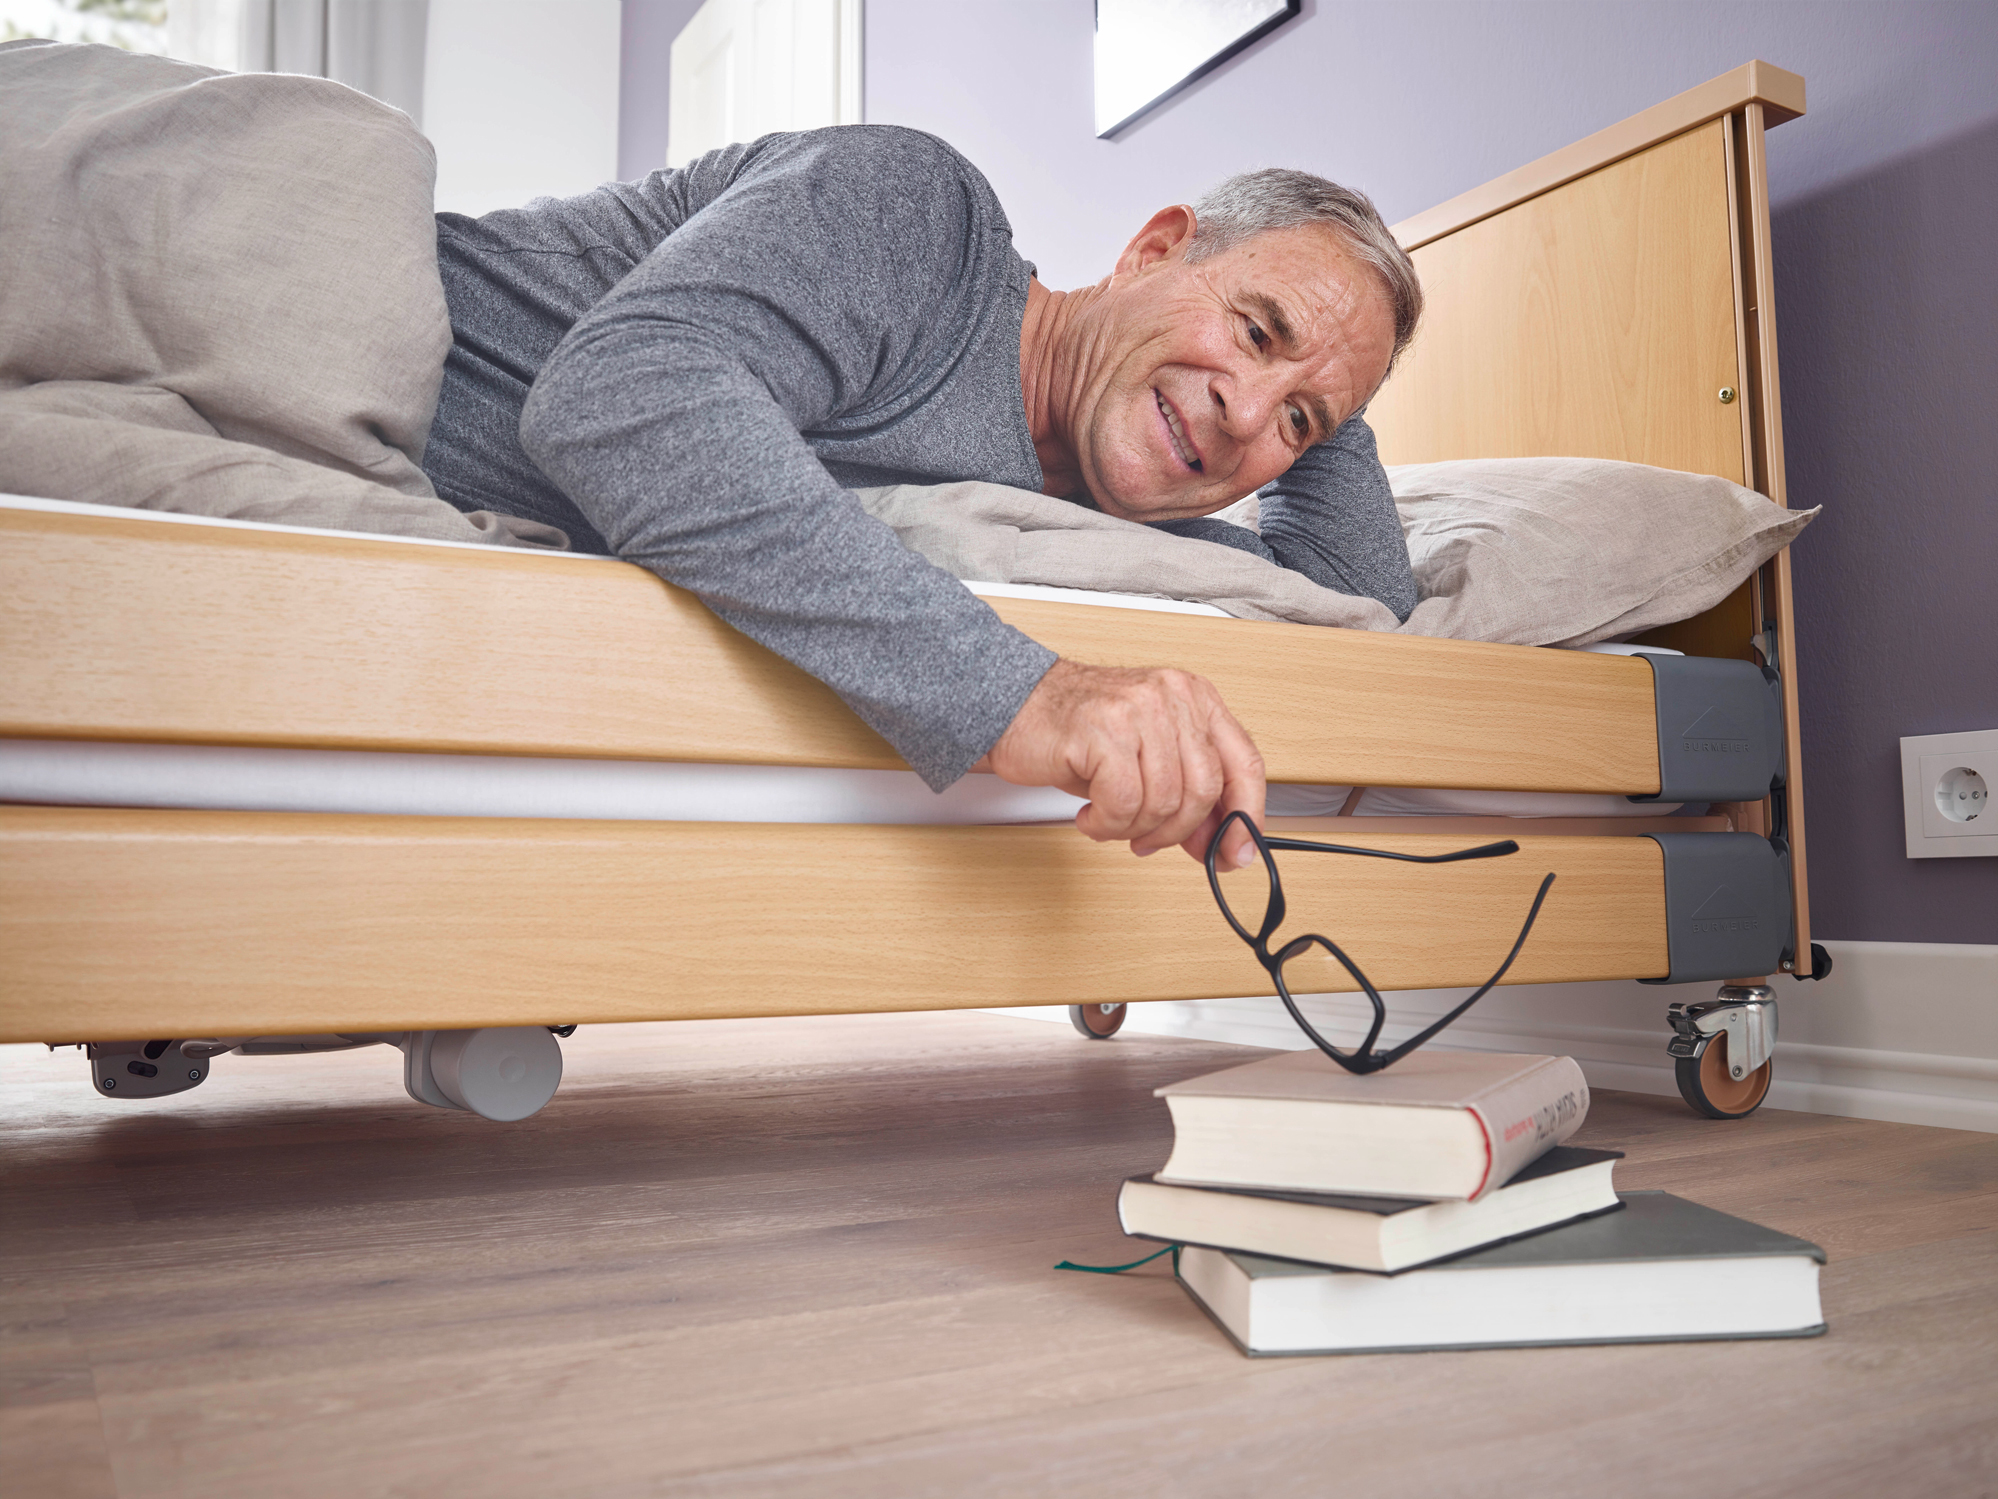 Fall prevention with the Dali low entry low-height bed